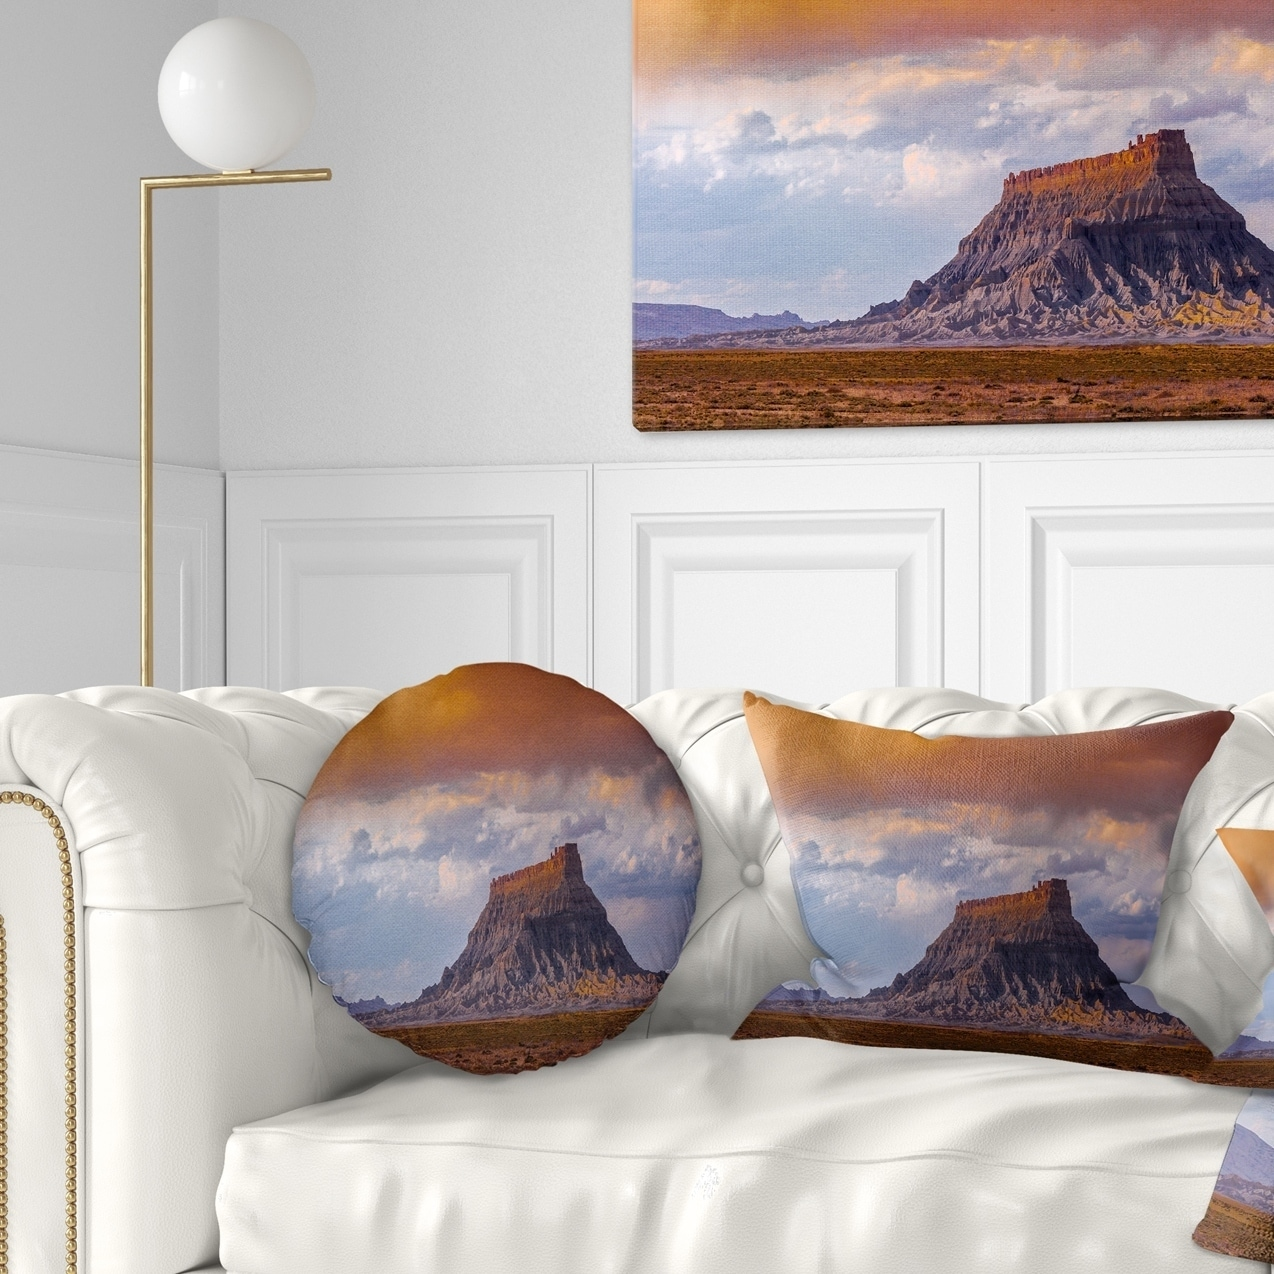 Design Art Designart Factory Buttle Utah Panorama Landscape Printed Throw Pillow Walmart Com Walmart Com